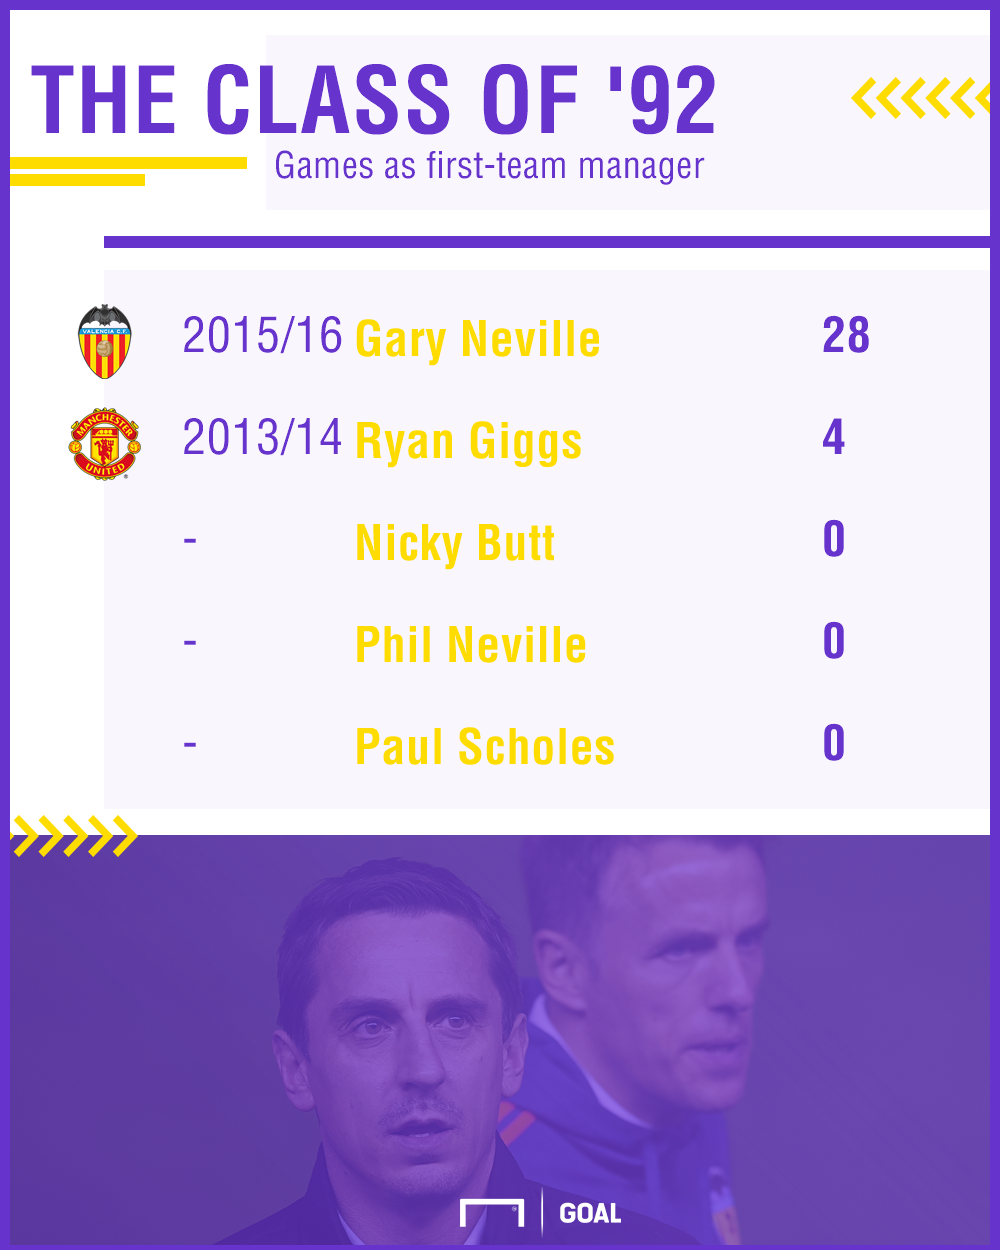 Class of 92 manager stats